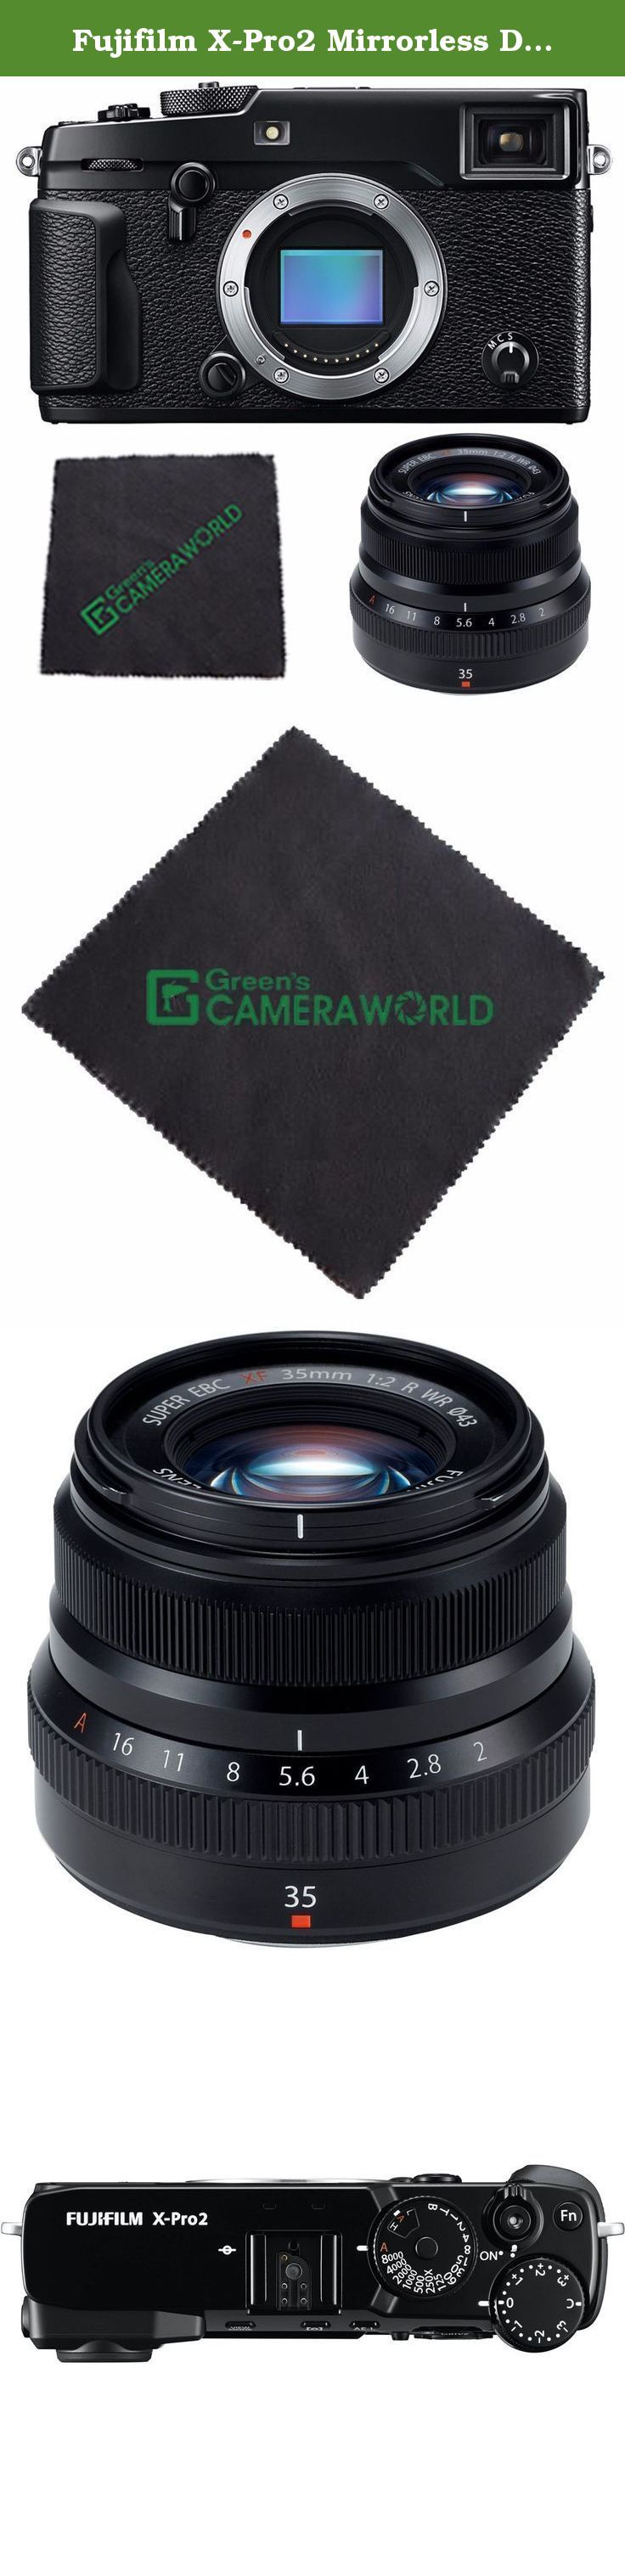 Fujifilm X-Pro2 Mirrorless Digital Camera (Body Only) + Fujifilm XF 35mm f/2 R WR Lens (Black) + Microfiber Cleaning Cloth Bundle. Greens Camera World is an AUTHORIZED Fujifilm USA DEALER. Includes USA Manufacturer Warranty The long-awaited successor to Fujifilm's first X-series mirrorless digital camera, the X-Pro2 sports a high-resolution X-Trans CMOS III sensor and redeveloped X-Processor Pro, along with the tested rangefinder-inspired design now synonymous with the X-Pro system. Now...